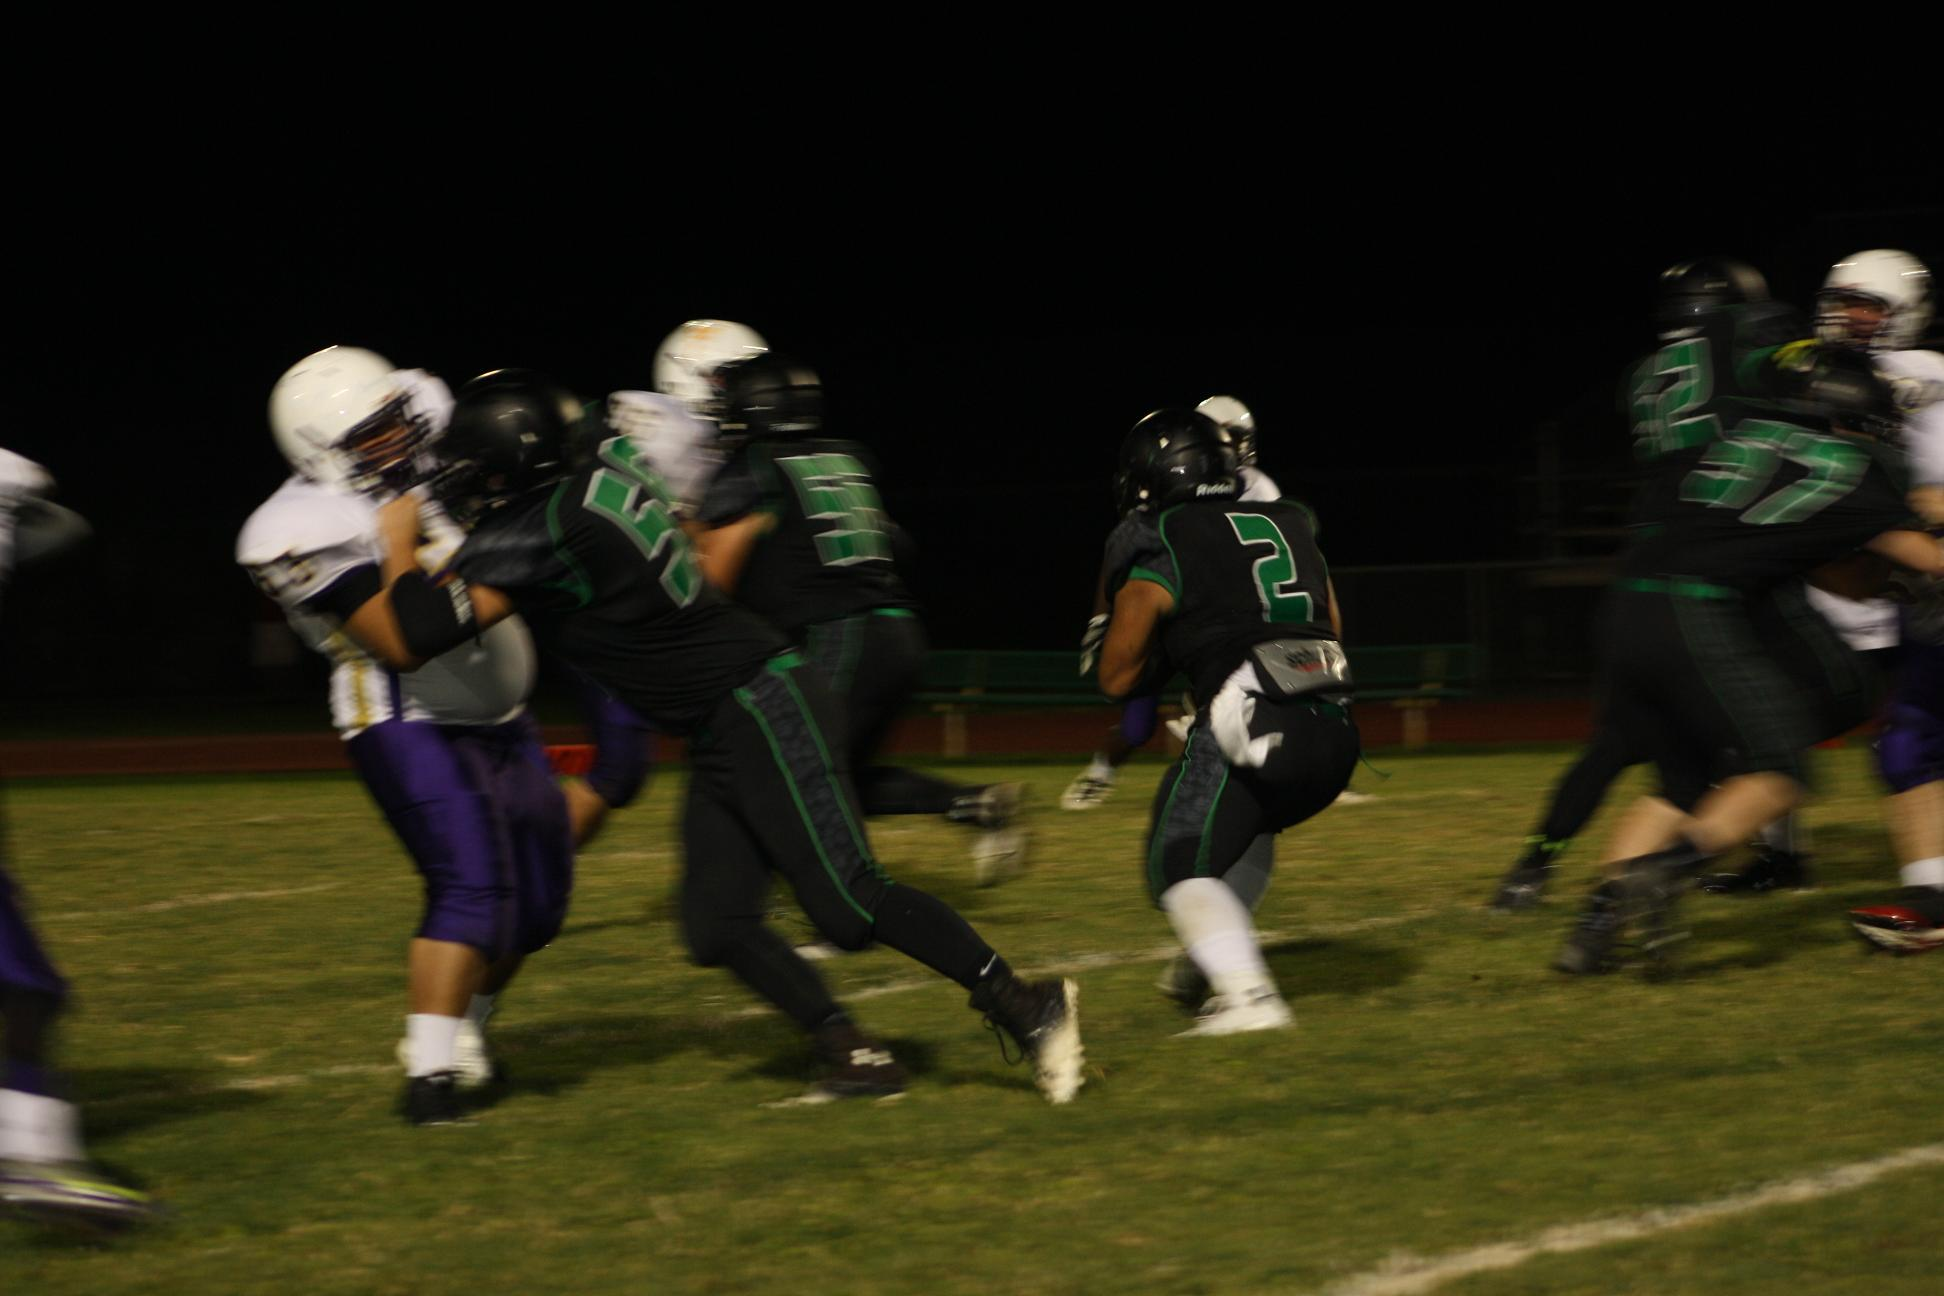 Paongo honors father with 4 T.D.'s in win over Miners 54-18